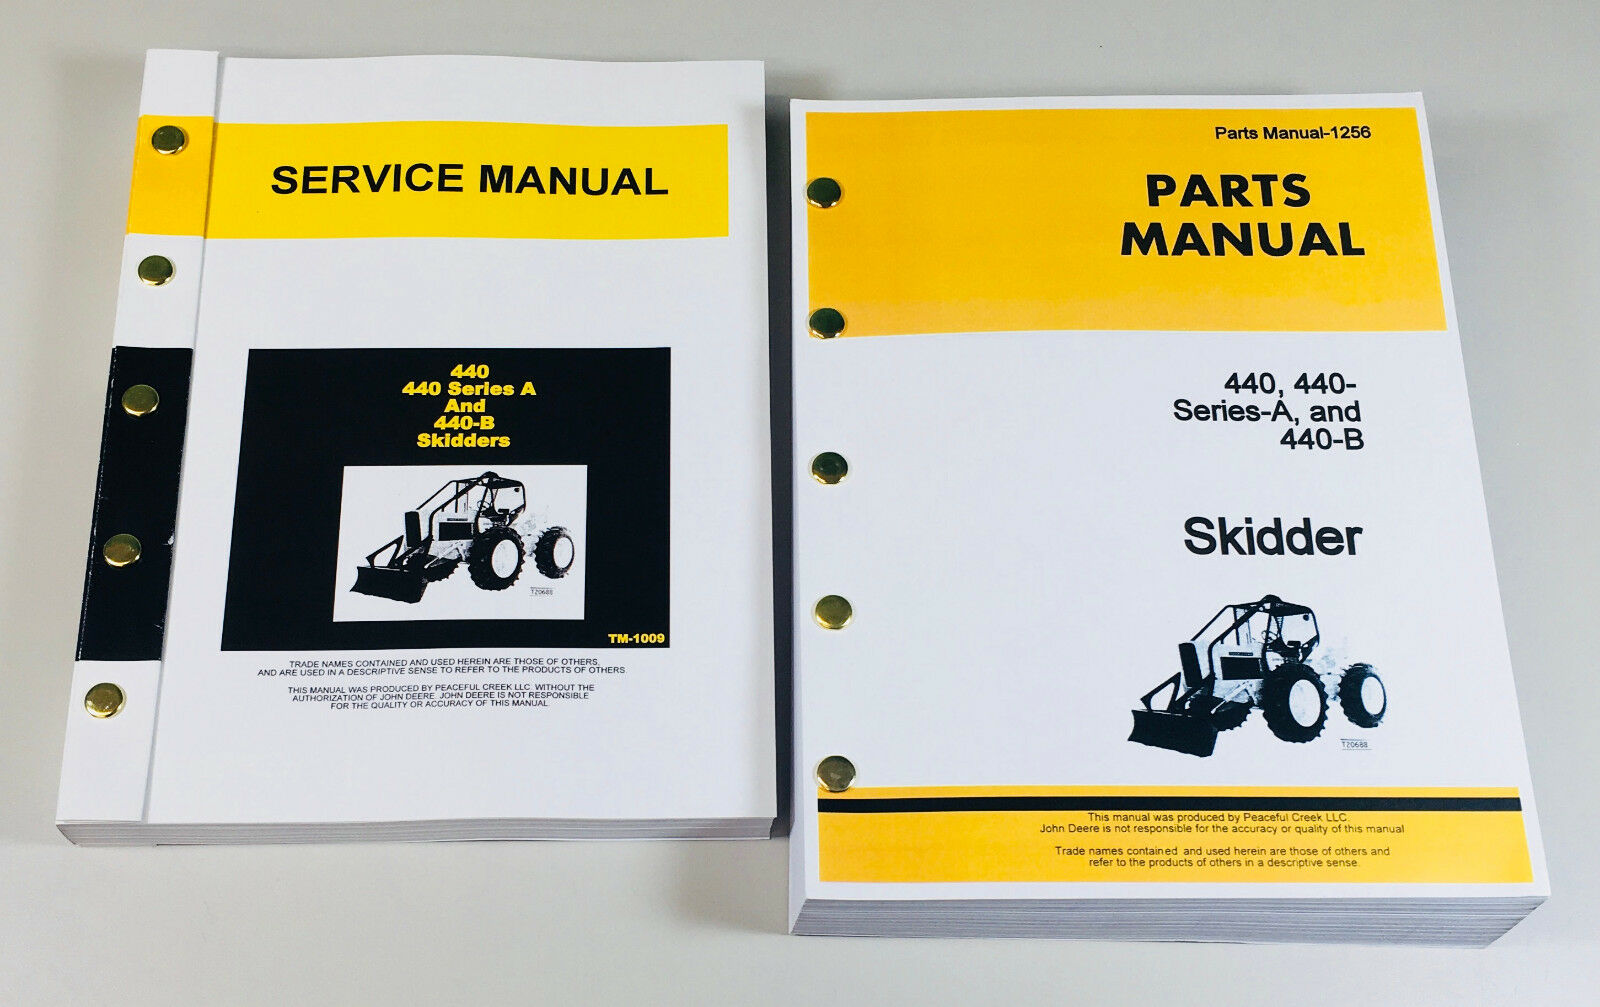 Service Manual Parts Catalog Set For John Deere 440 440a Series A 4320 Wiring Diagram 1 Of 12free Shipping